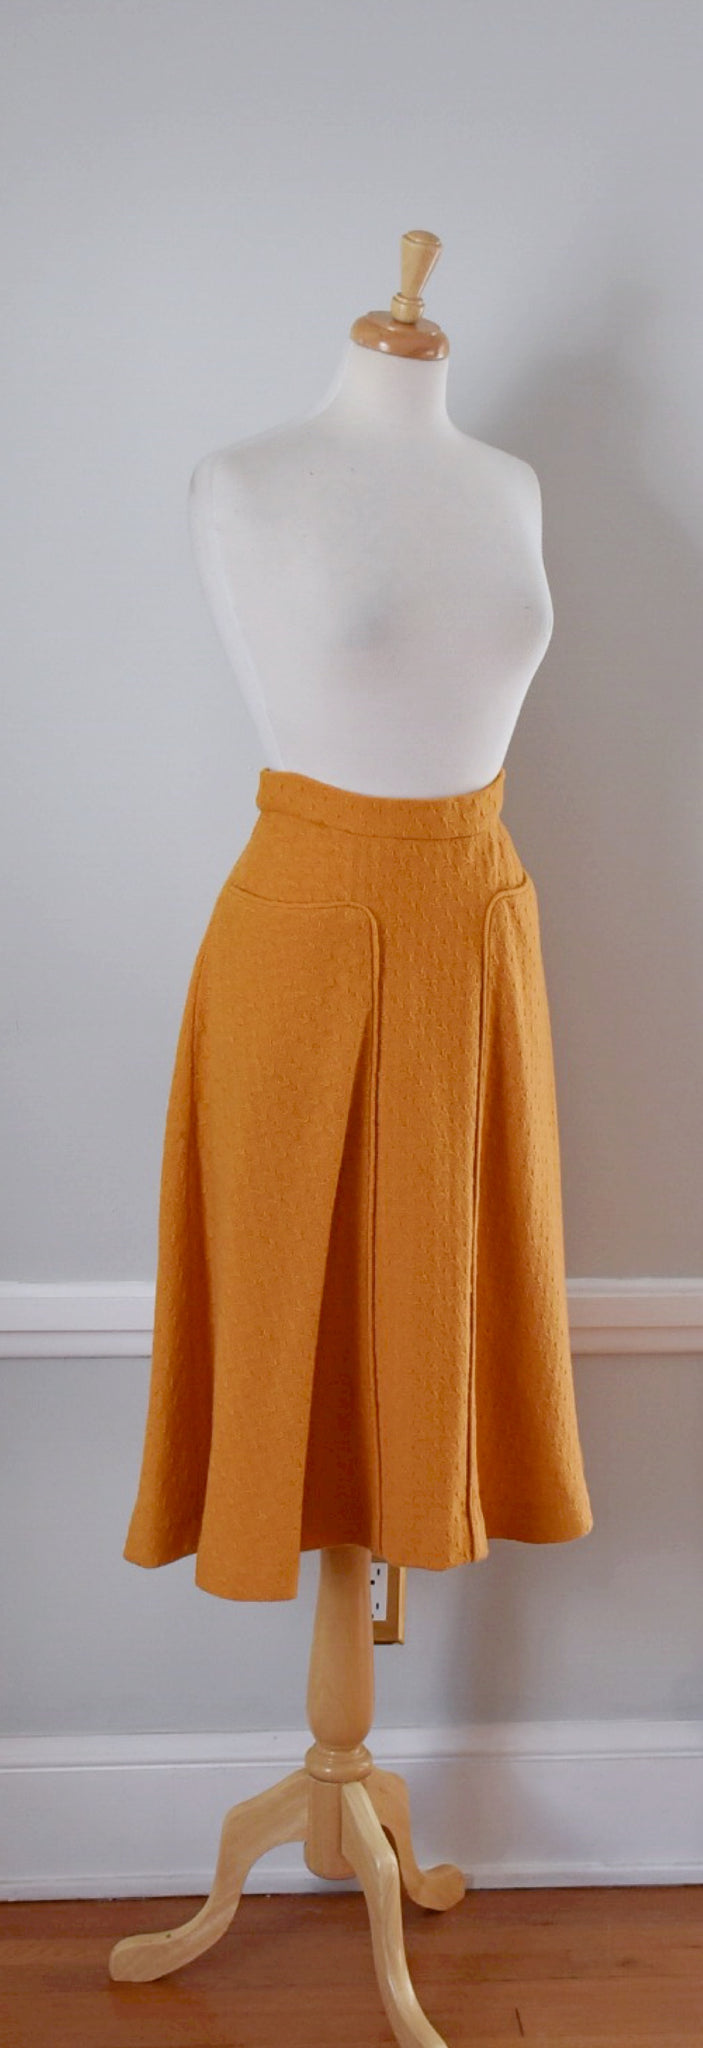 40s / 50s Textured Wool Midi Skirt